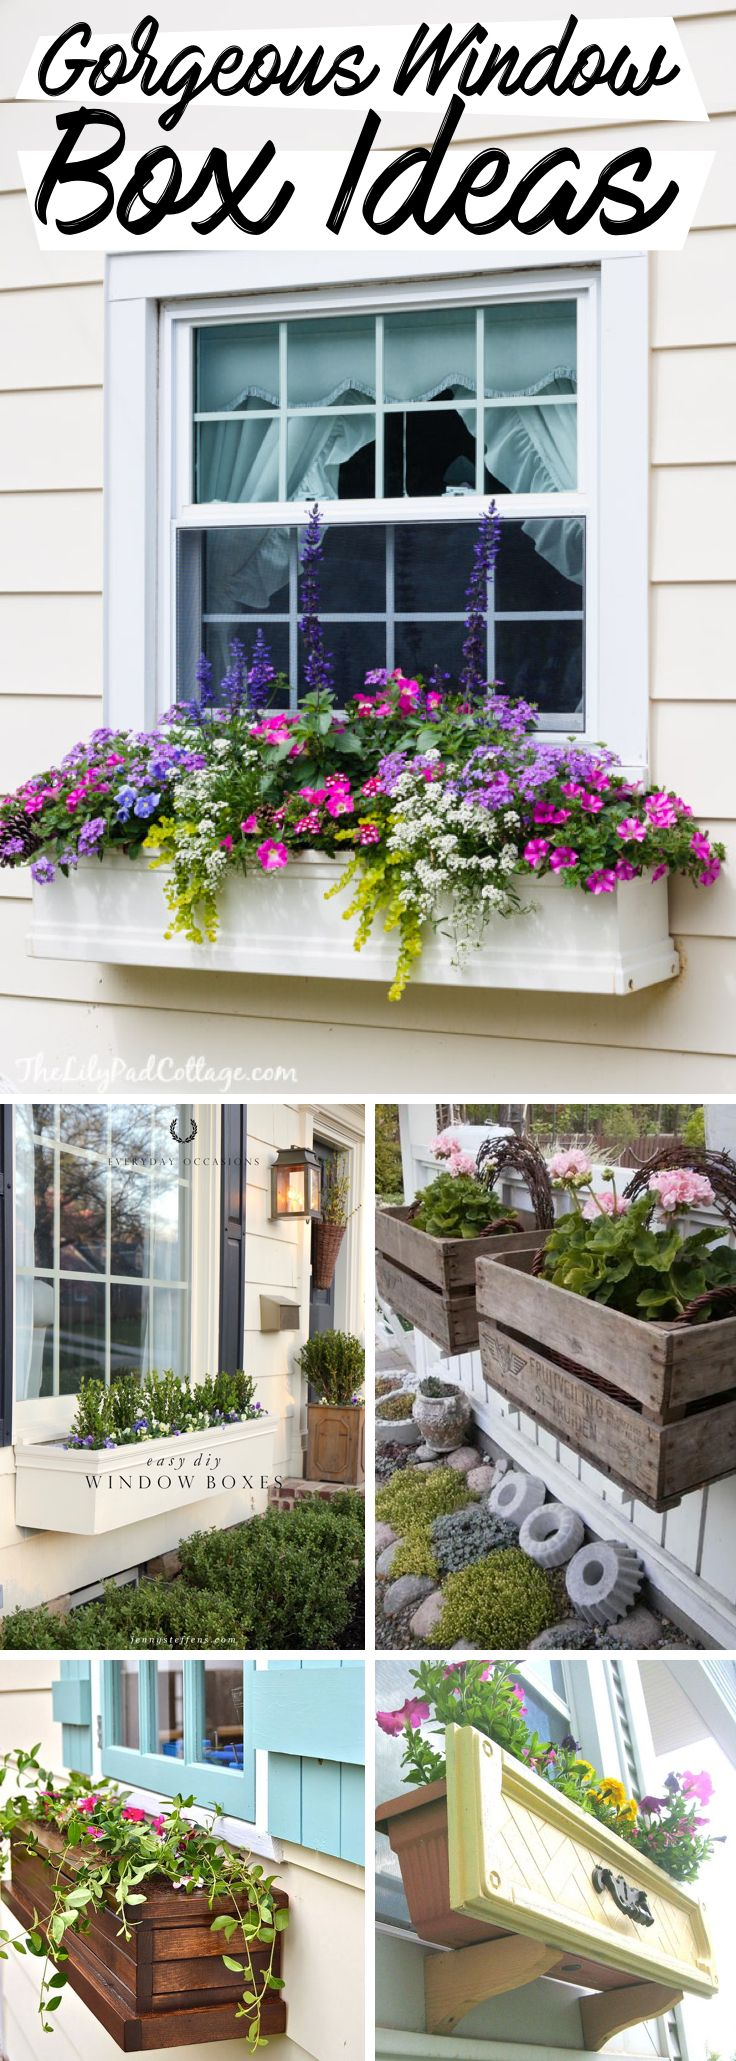 25 best ideas about window boxes on pinterest outdoor. Black Bedroom Furniture Sets. Home Design Ideas